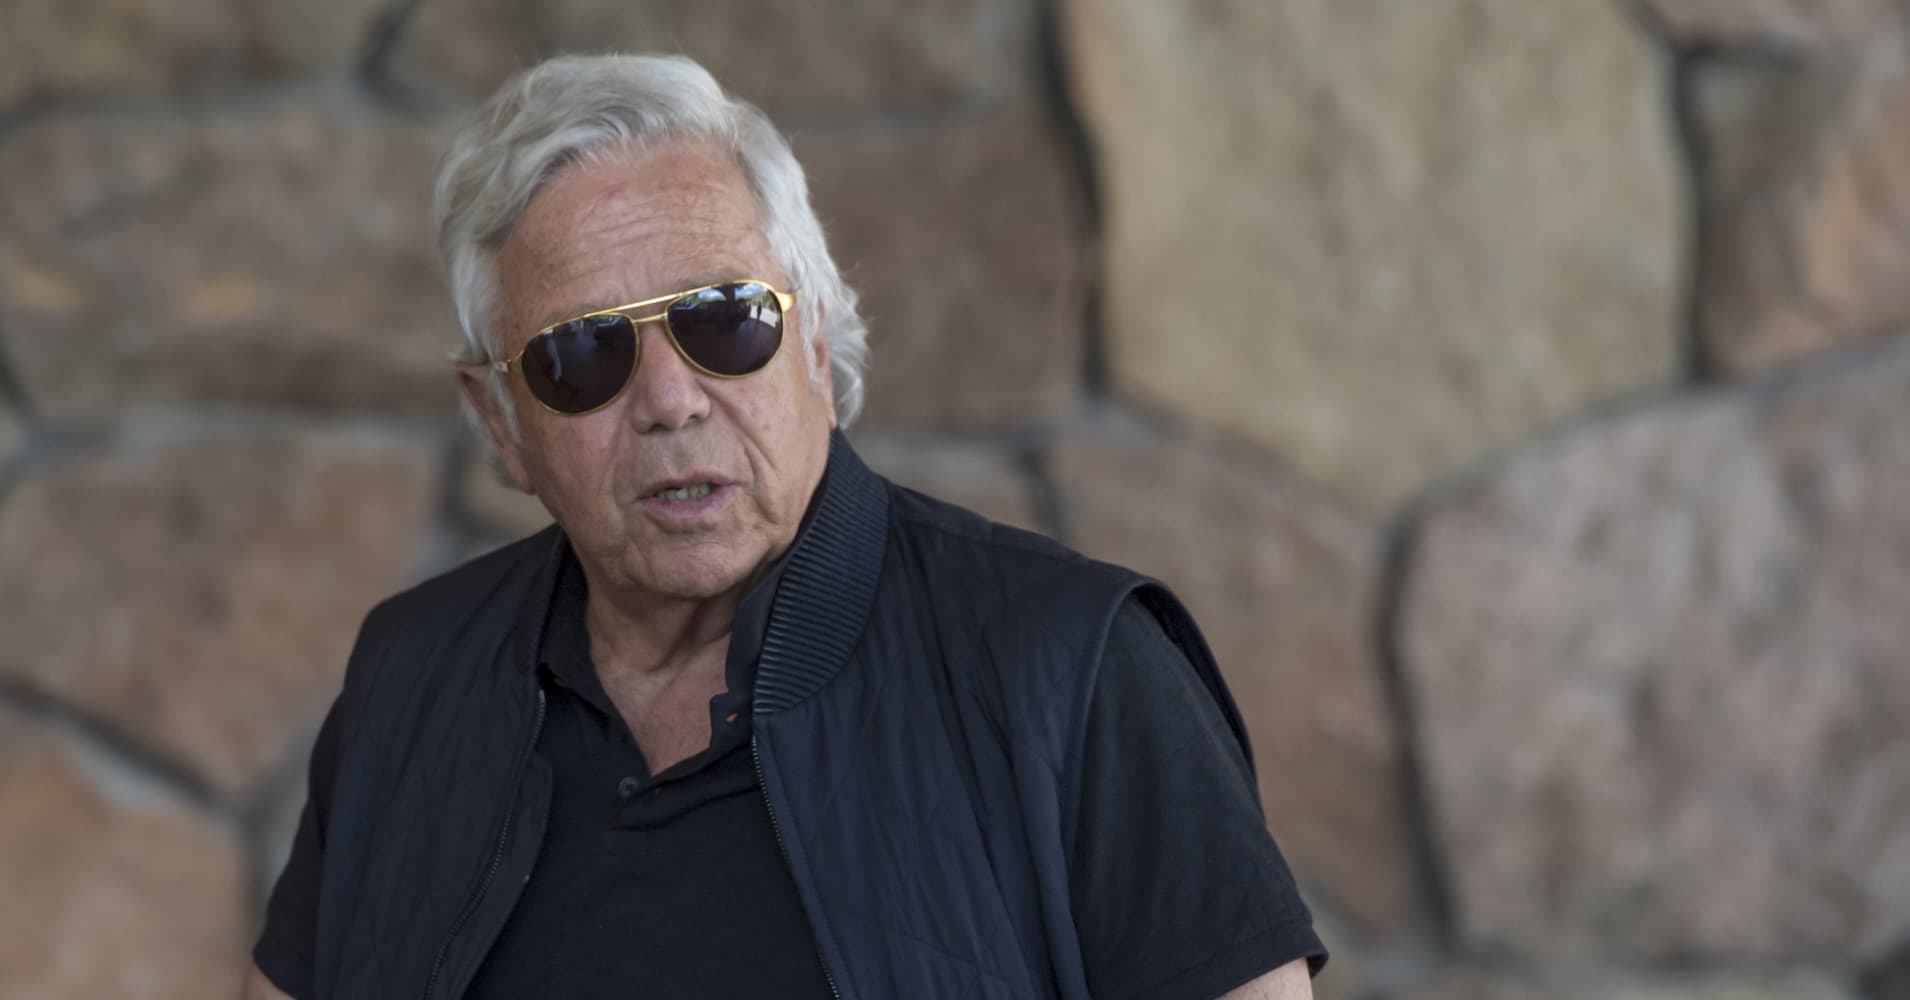 Robert Kraft will reject deal to drop prostitution solicitation case